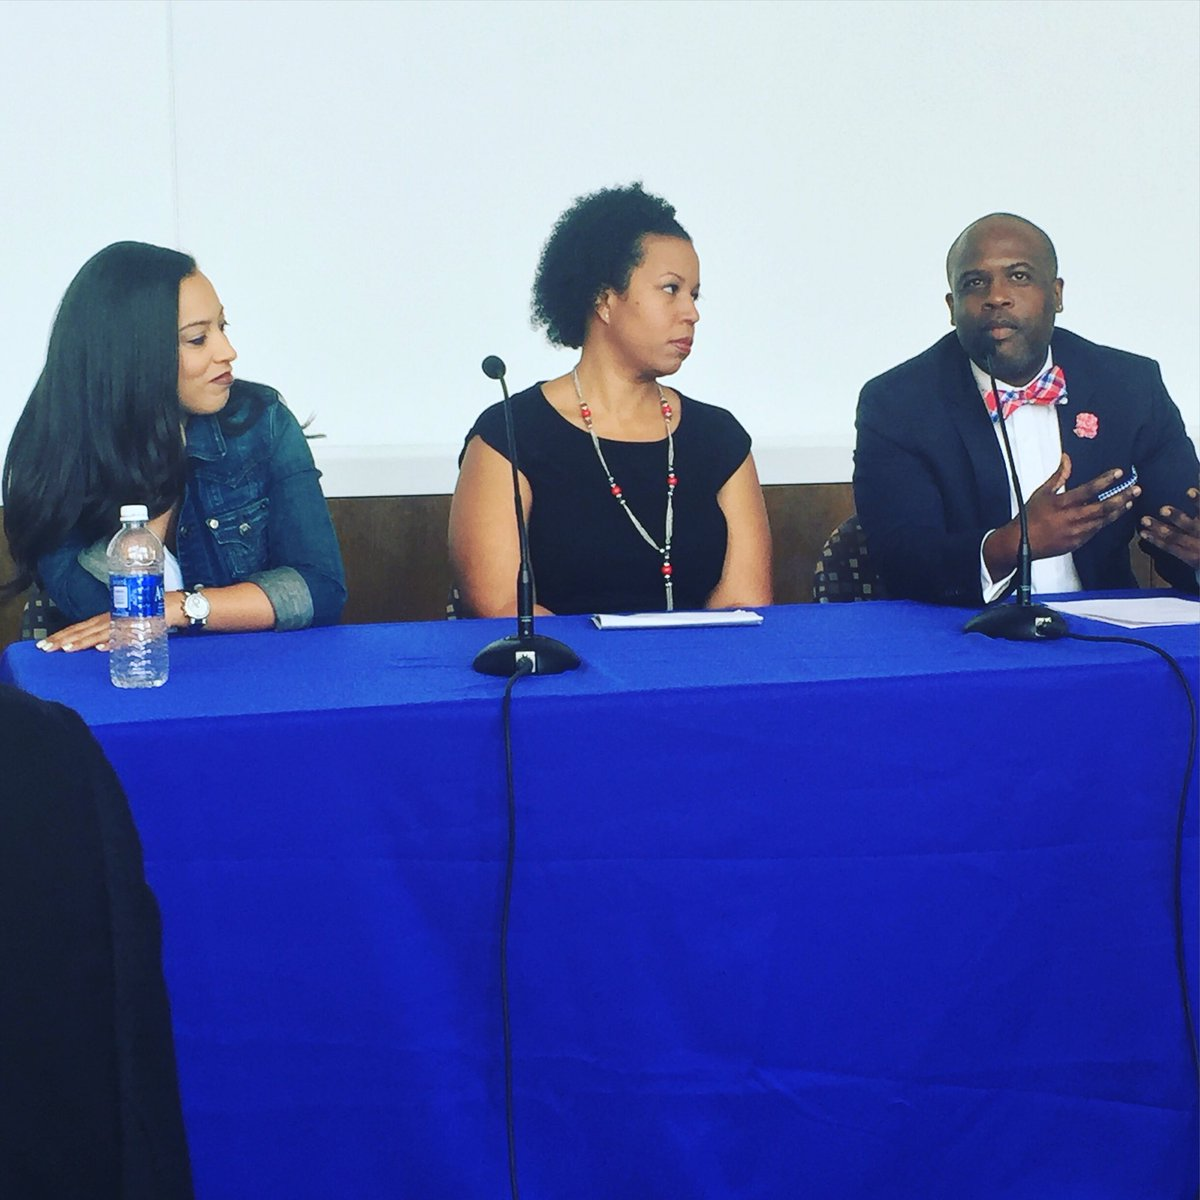 Our panelists @angela_rye @kimberp_a @cunybmi talking real issues and unity in the black community #soybny2016 https://t.co/jiiNocsbzE